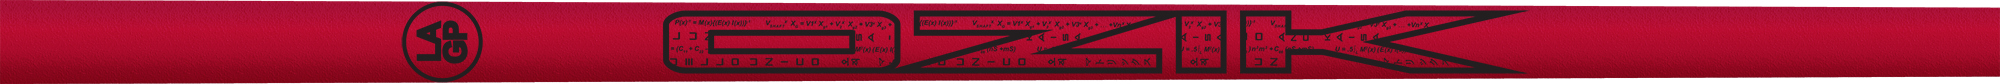 Ozik White Tie: Red Black Textured - Wood 50 A